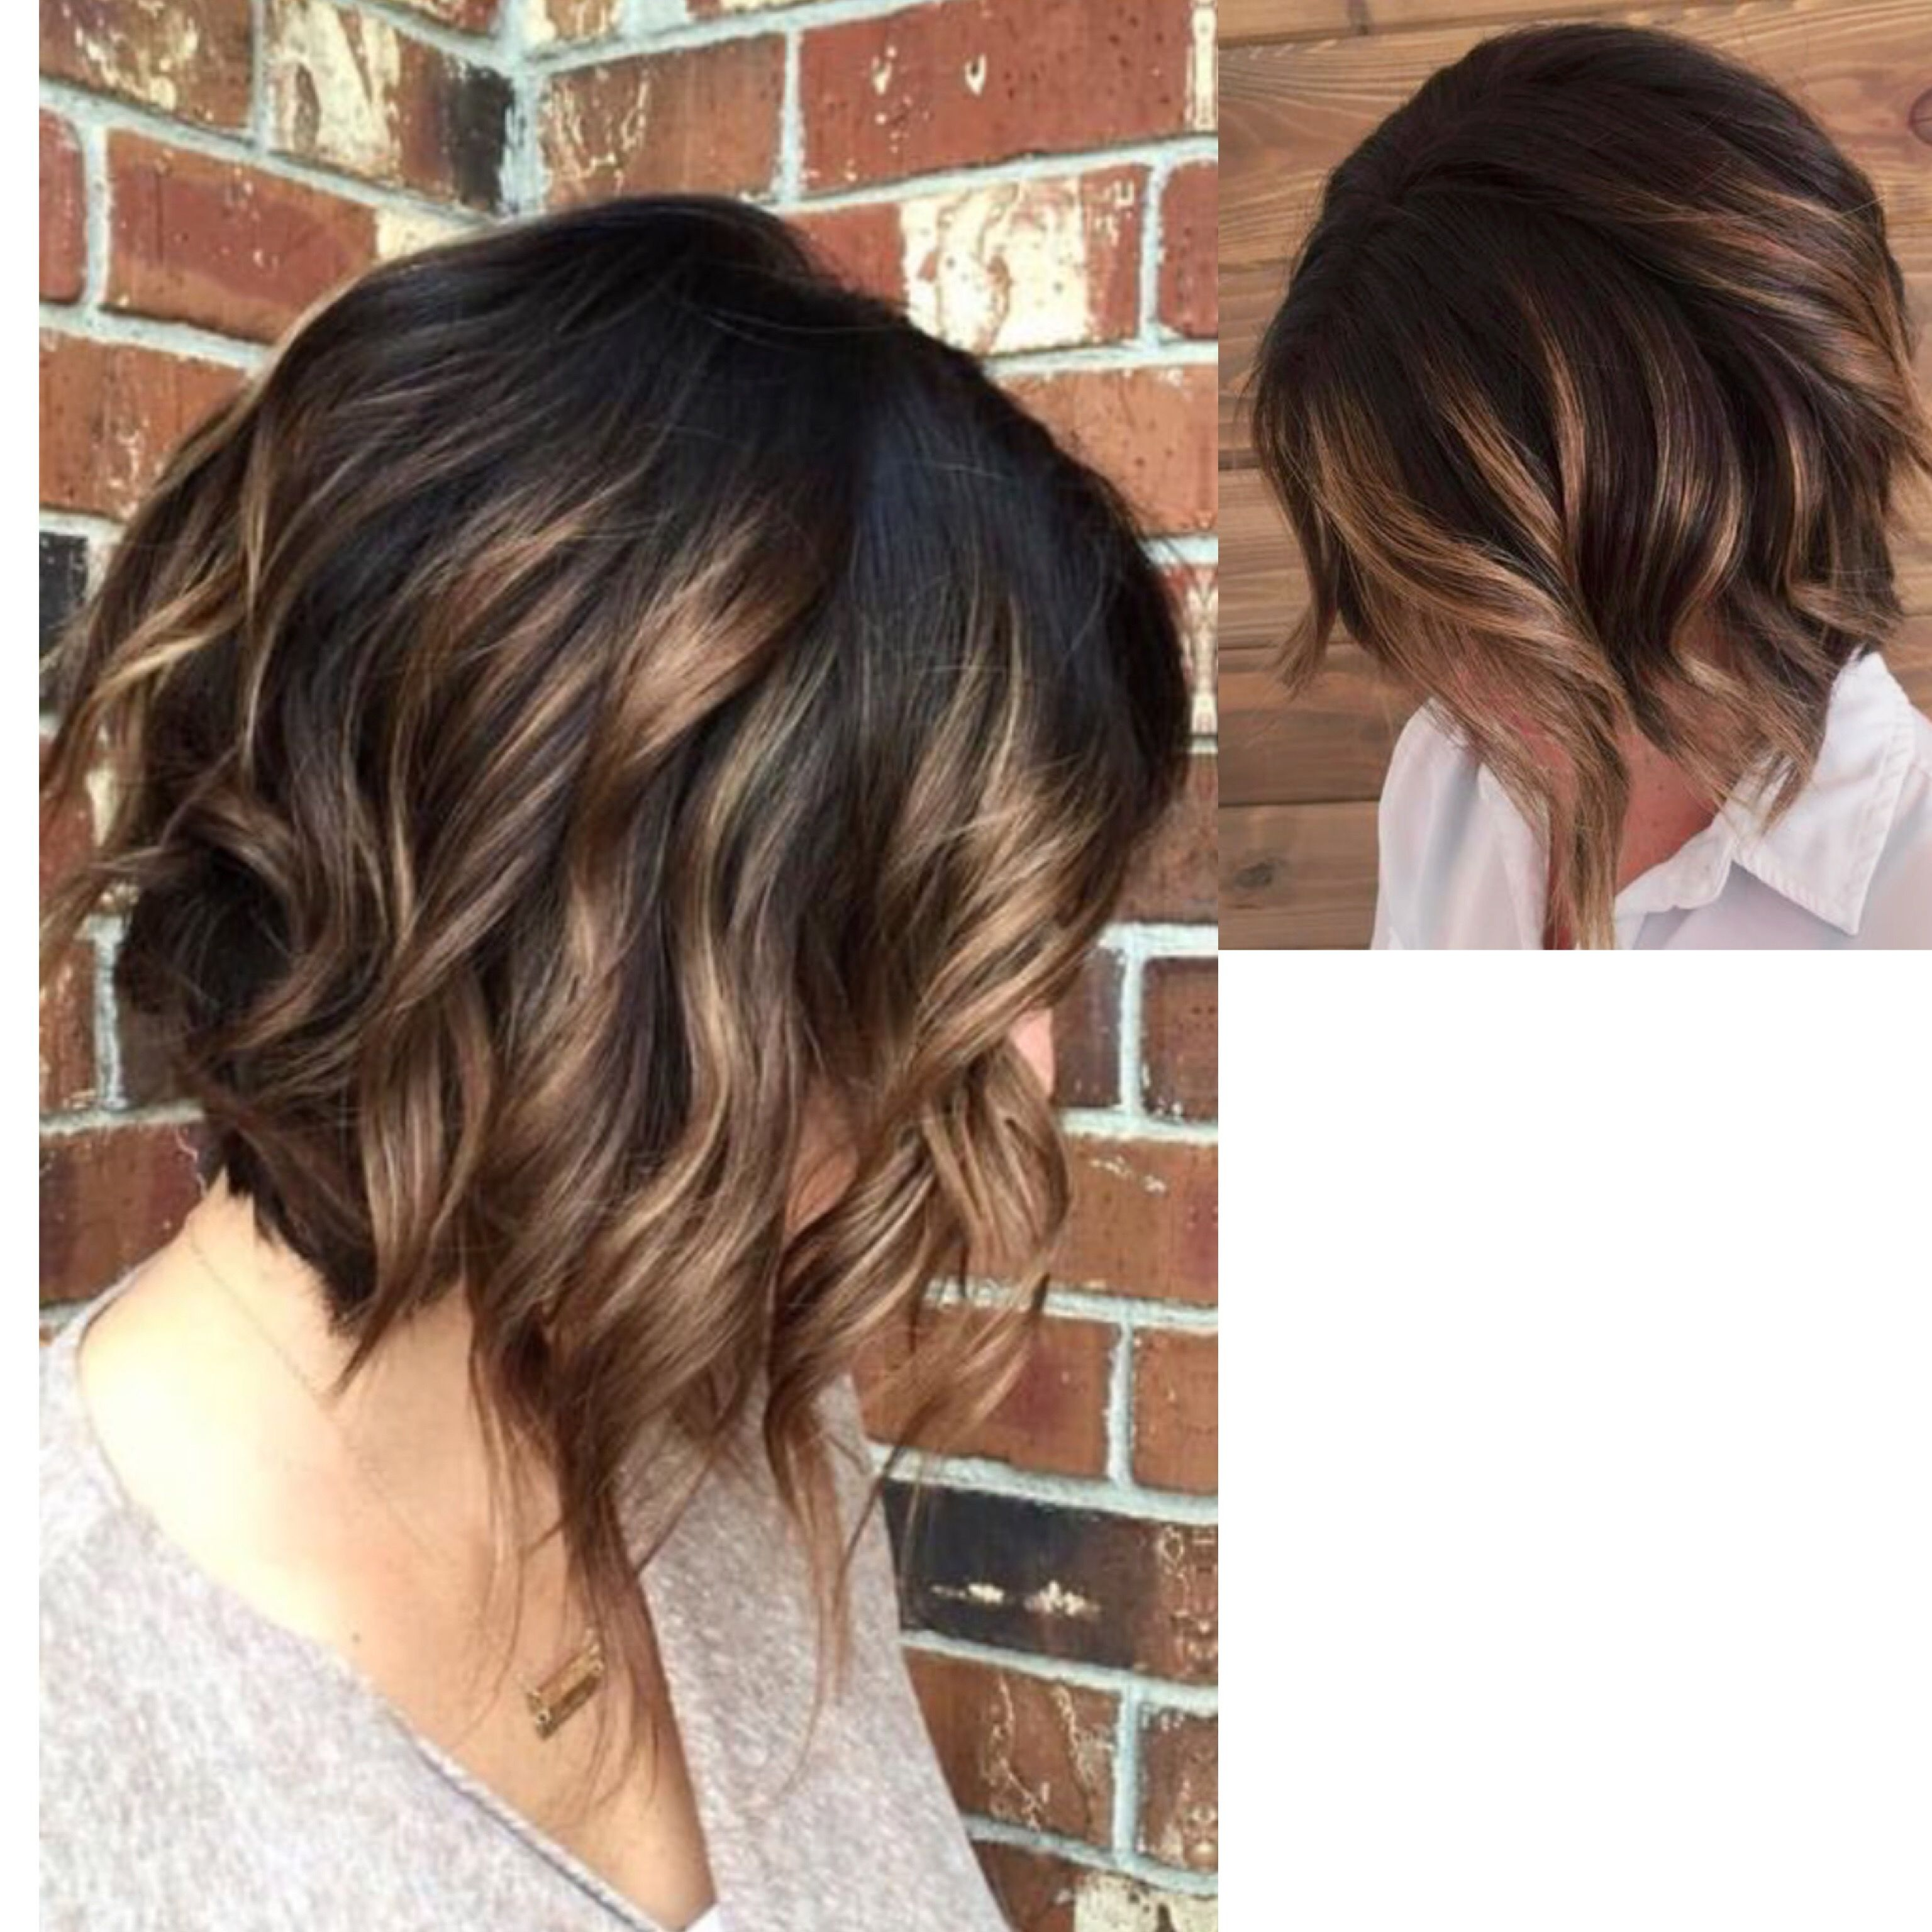 Shorter In Back Loose Waves Piecey In Front Face Framing Layers Short Hair Balayage Hair Styles Short Hair Styles